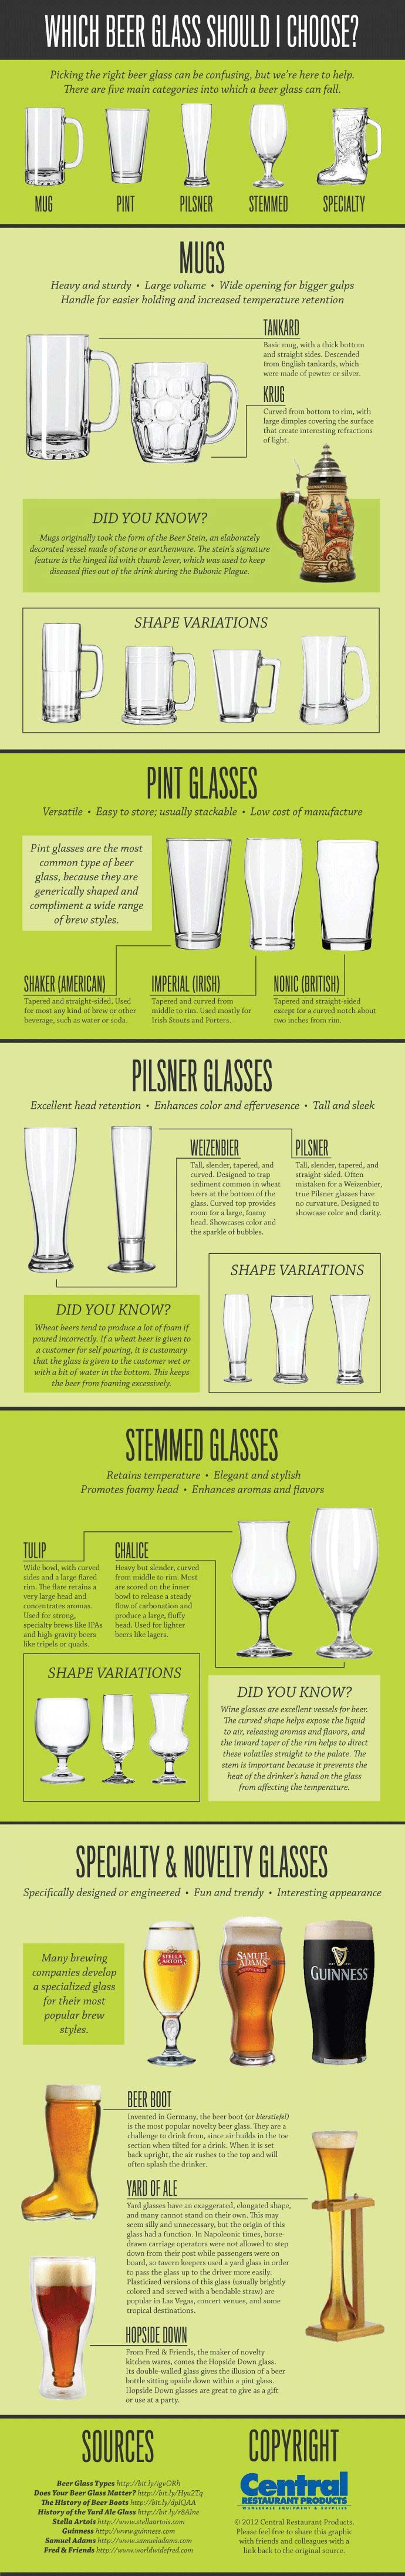 The Different Types Of Tea Drinkers